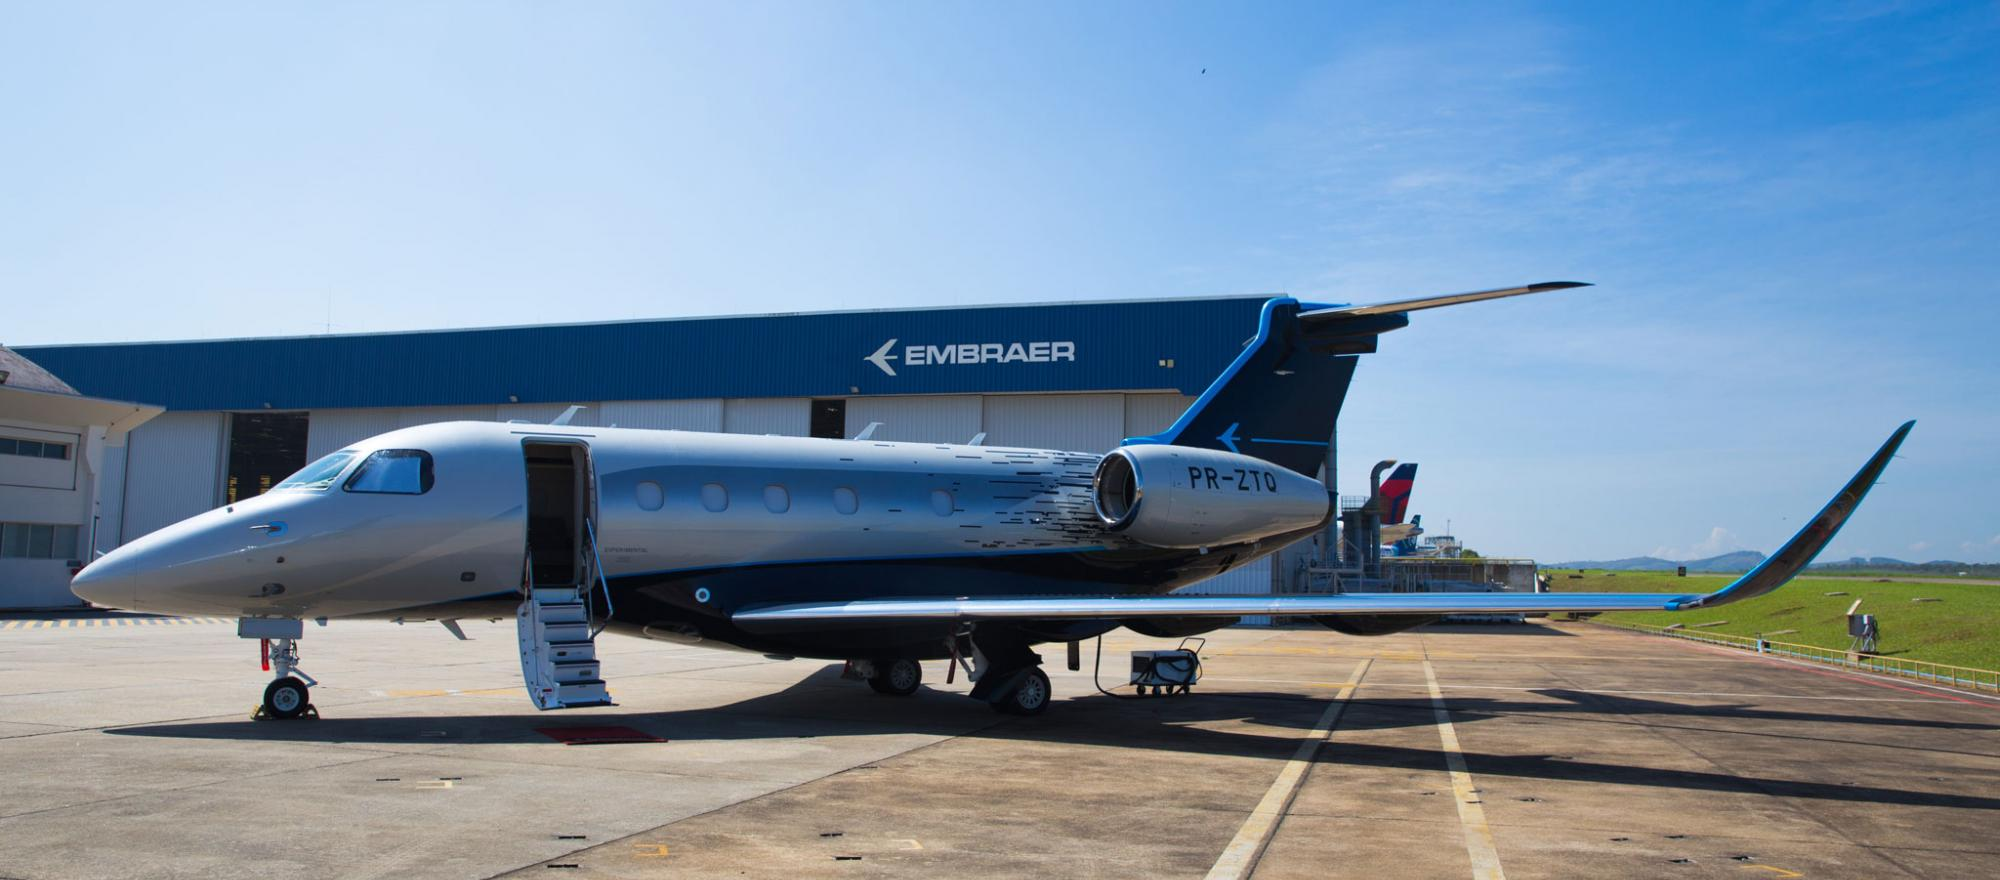 Embraer Praetor outside facility